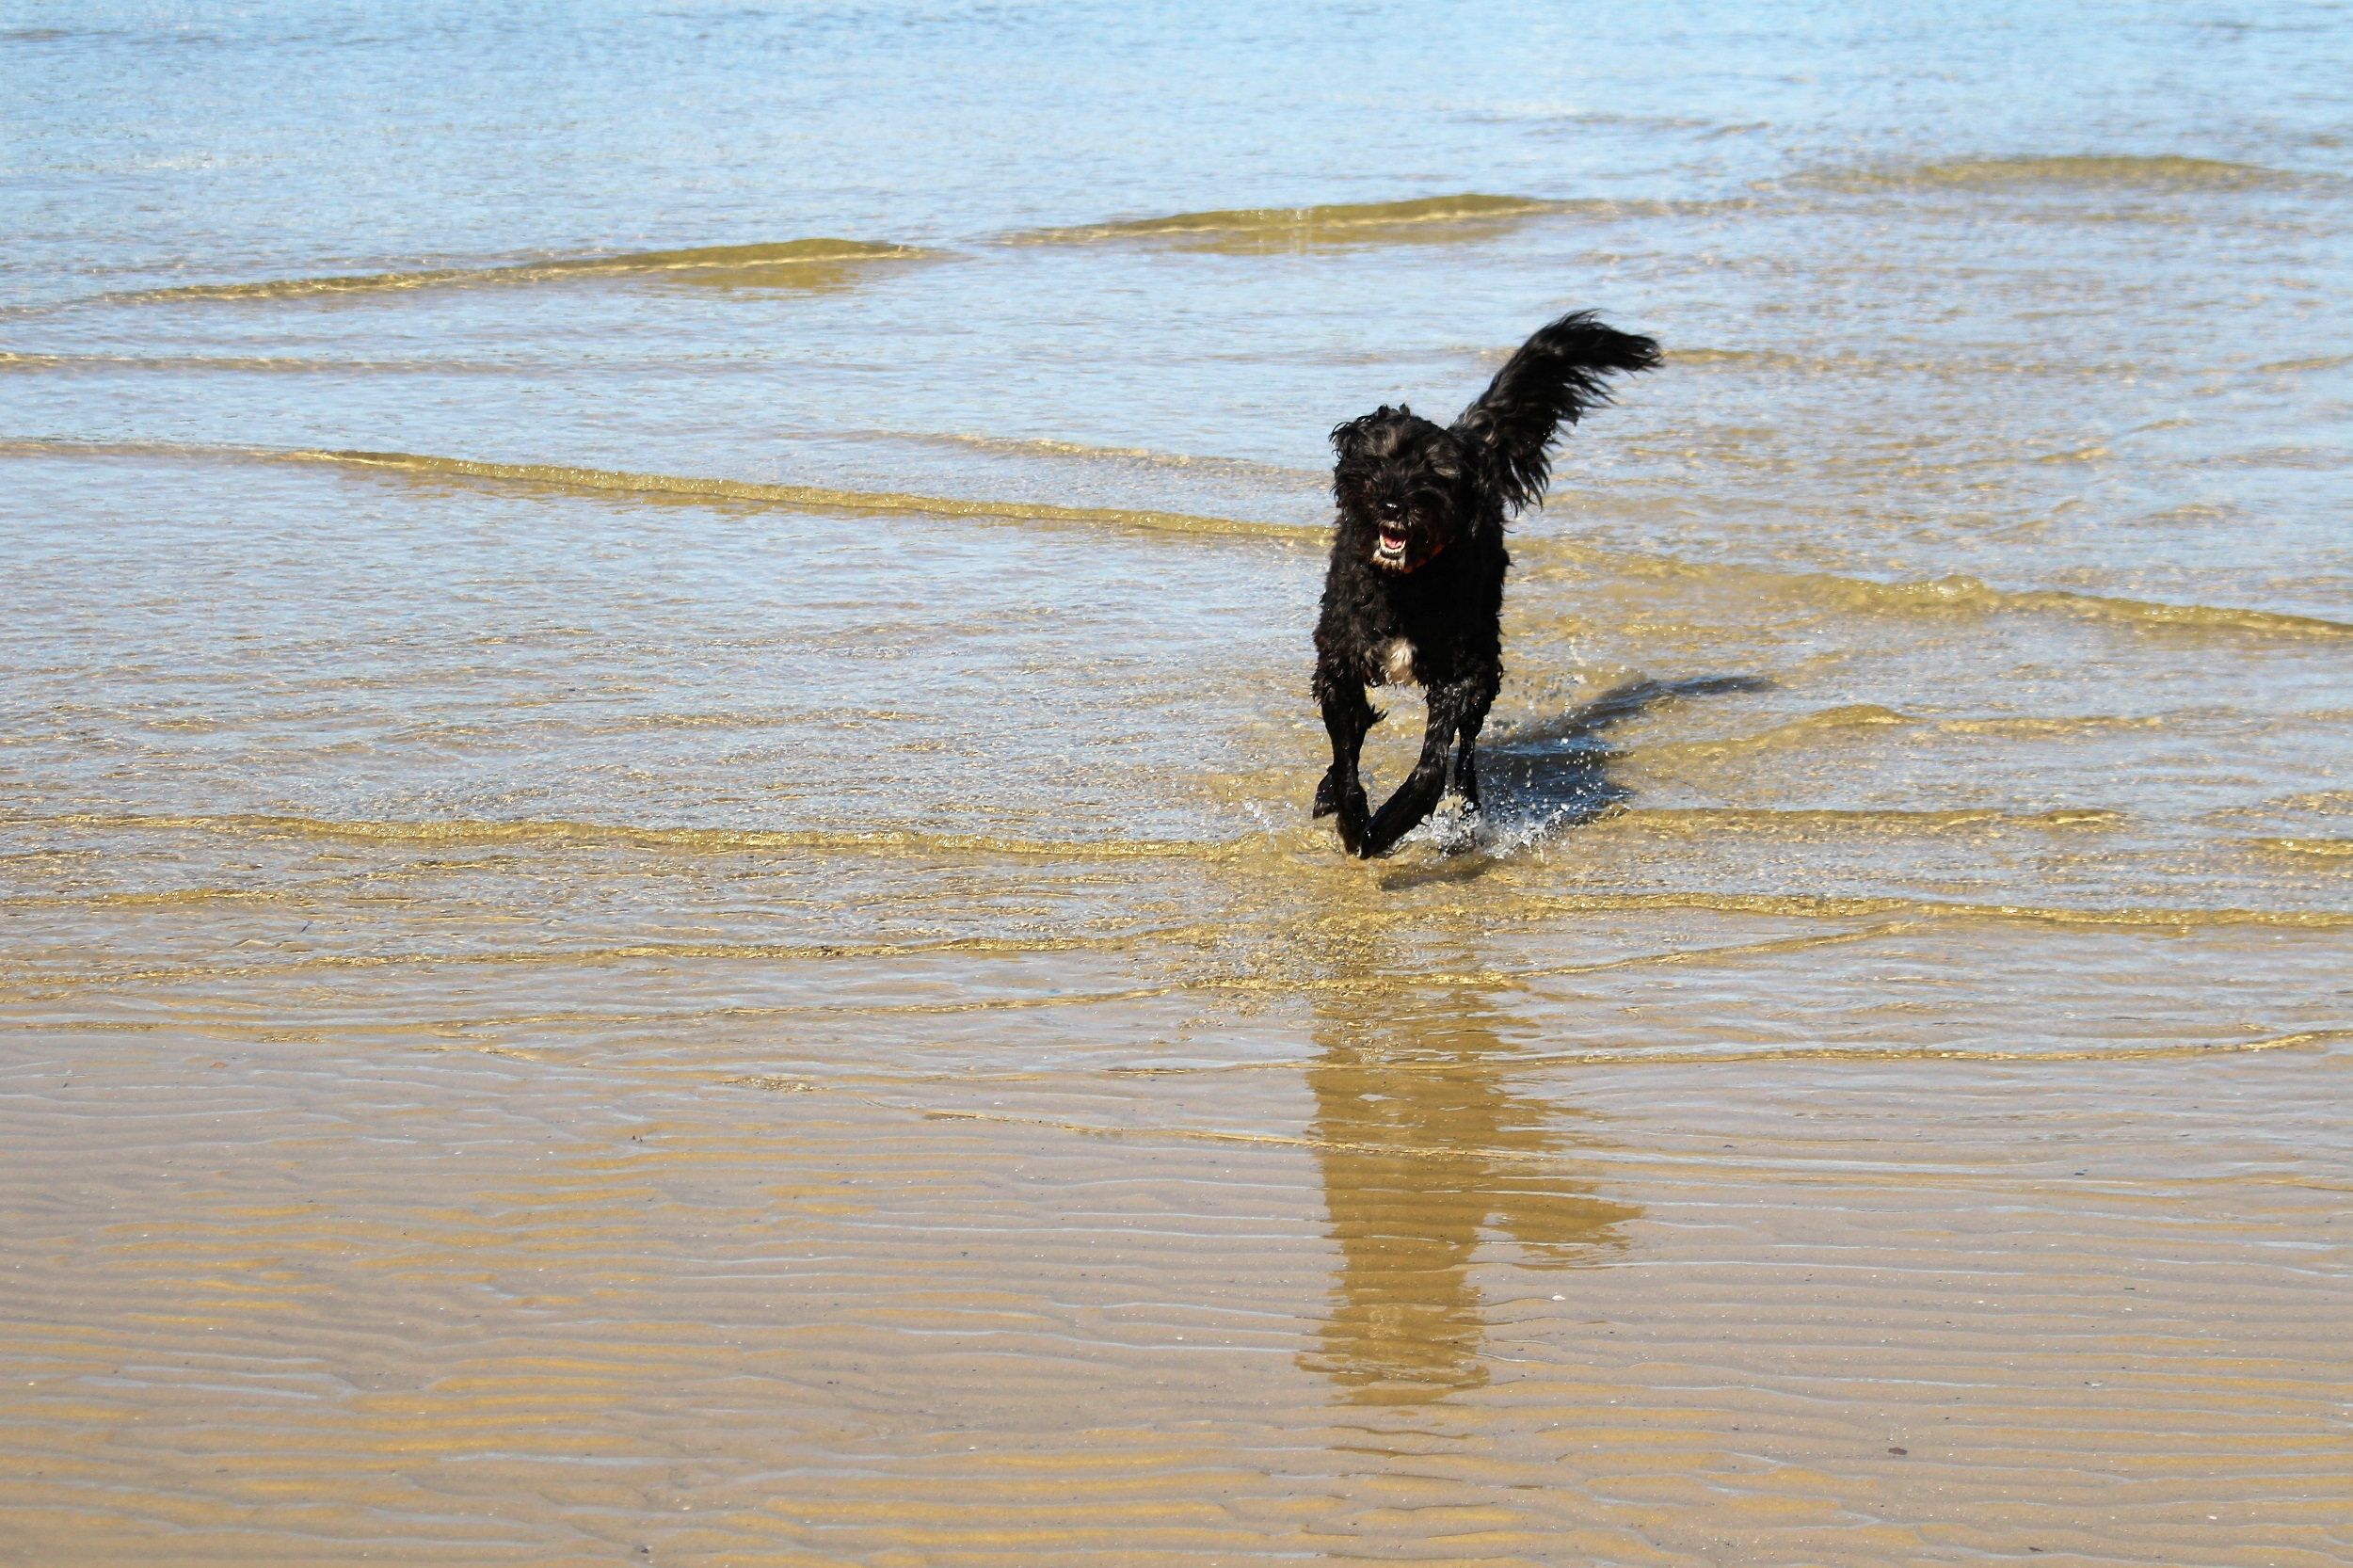 The official canine representative of Sydney Nimble Tours at full speed - Sandy Bay, a designated dog beach near Clontarf Beach.